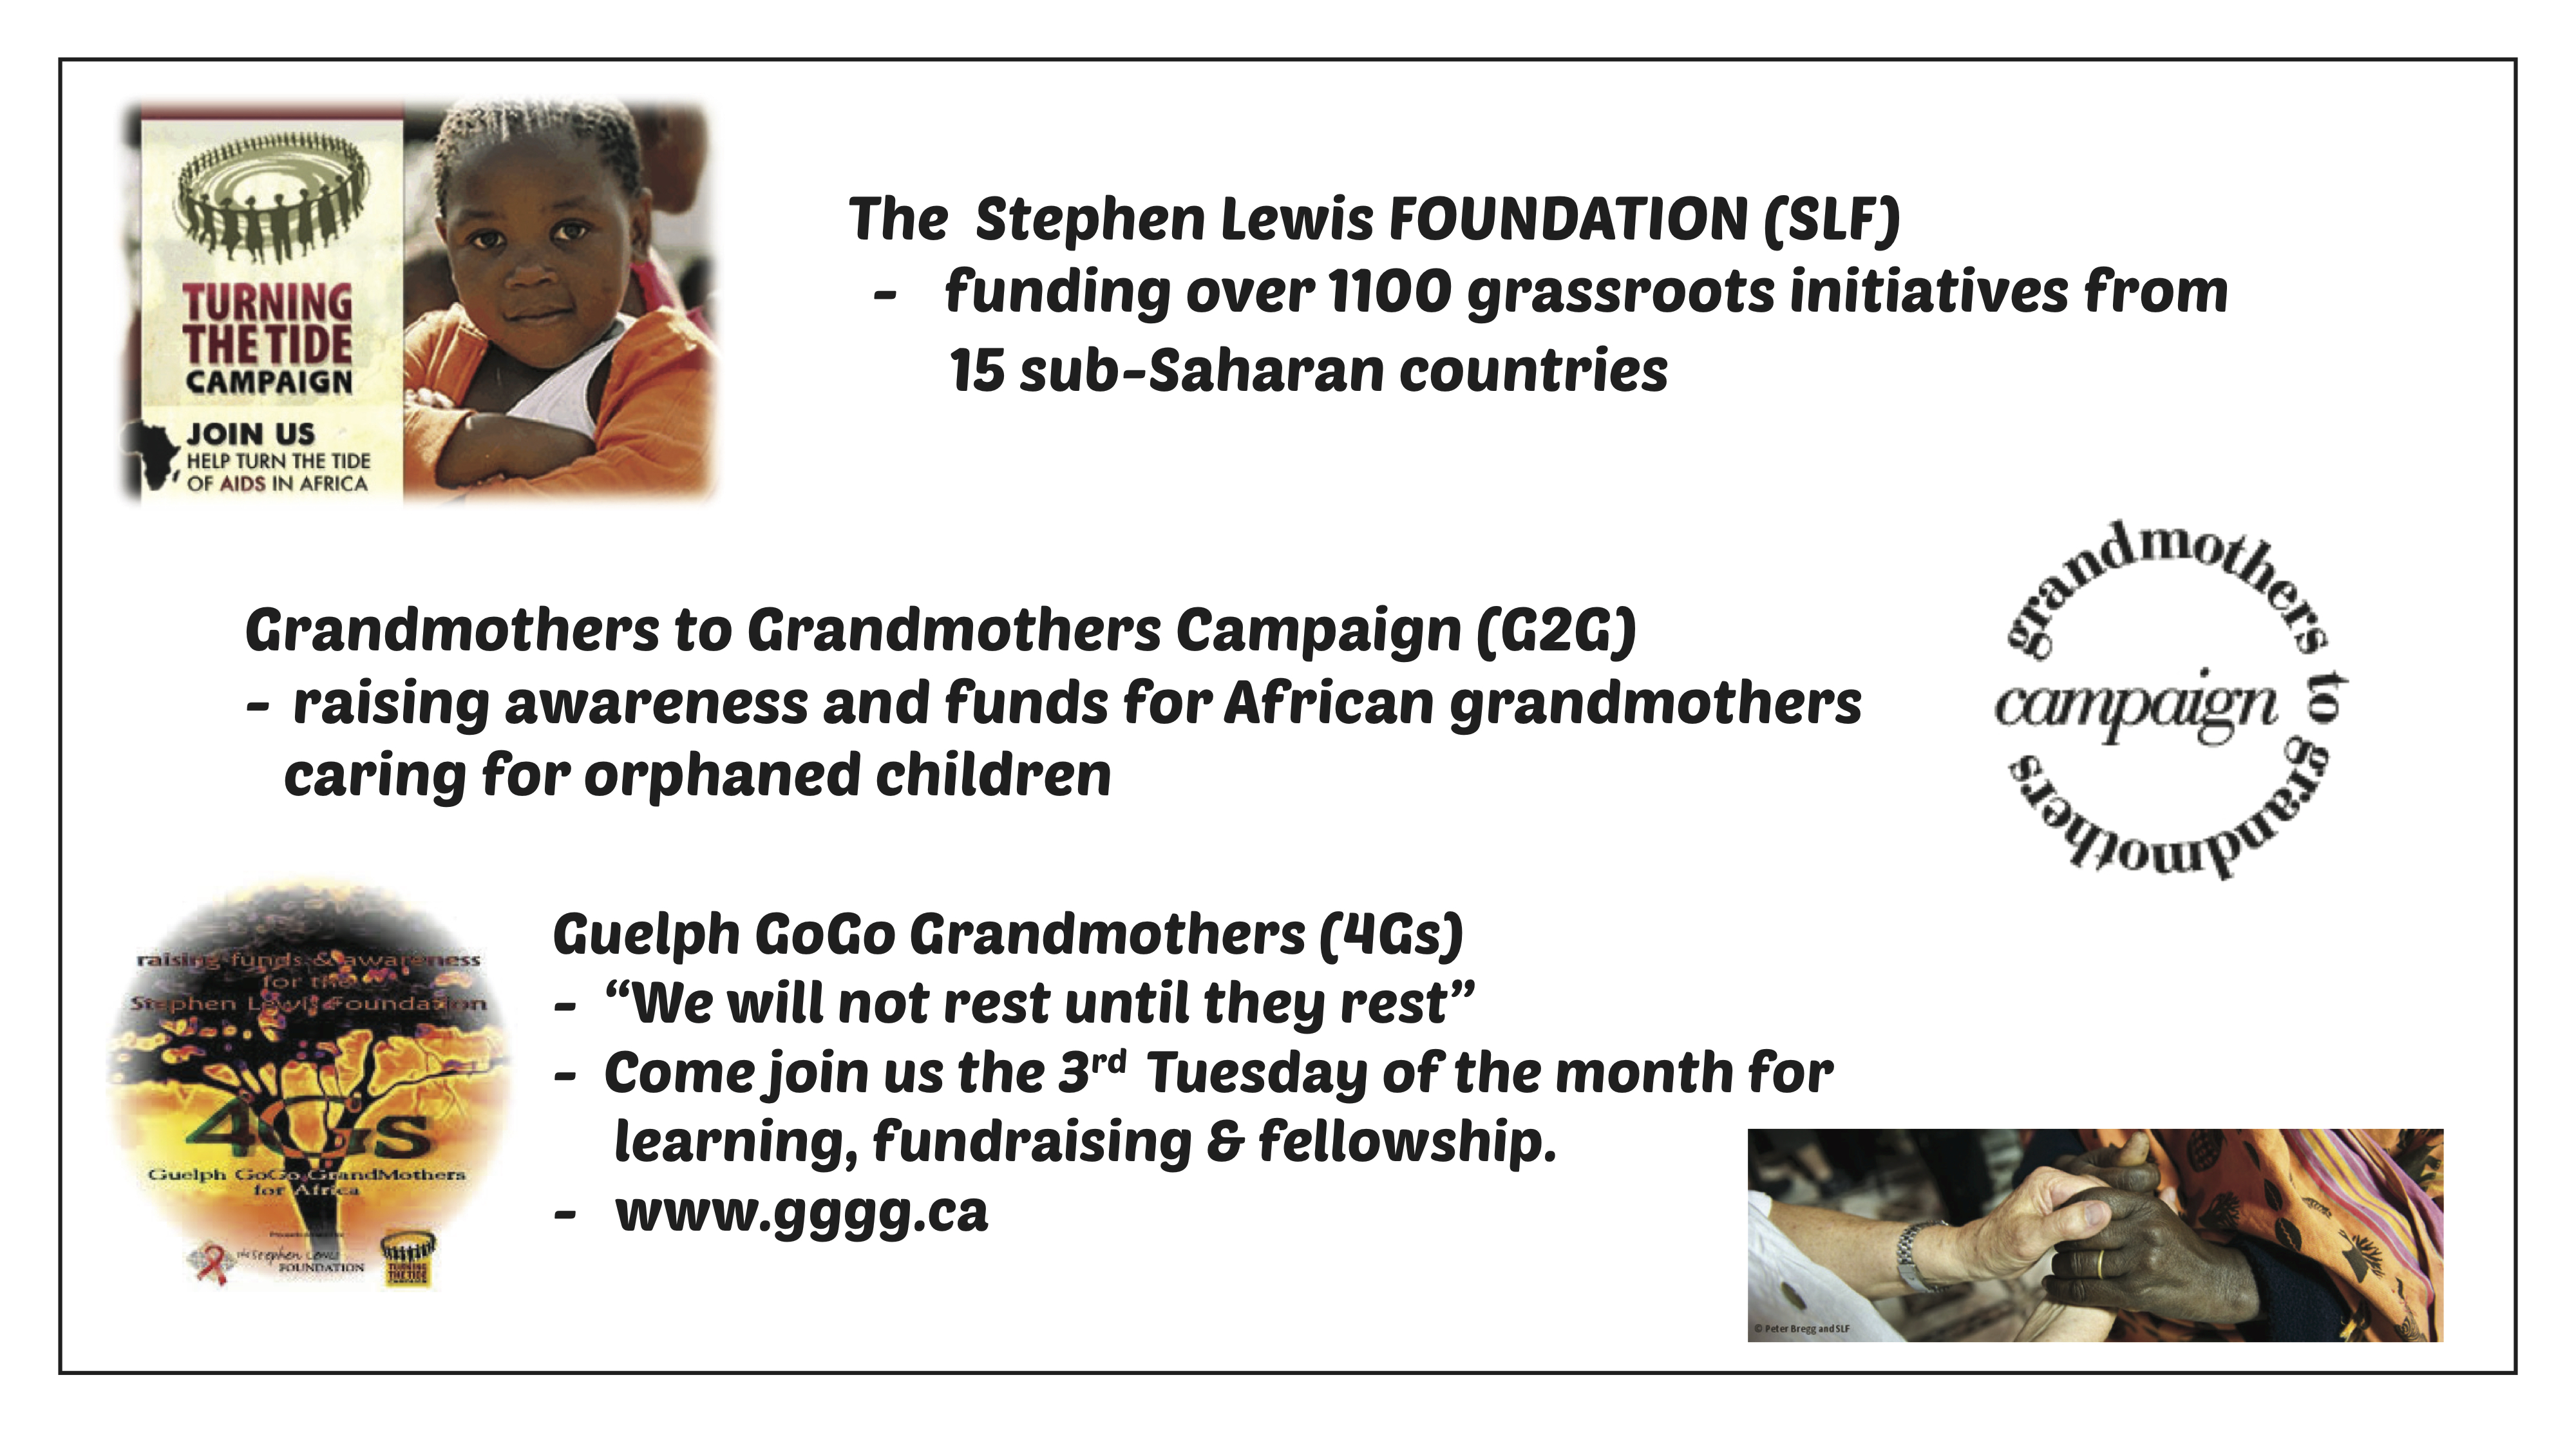 Foundation, G2G Grandmothers, GoGo Grandmotherd